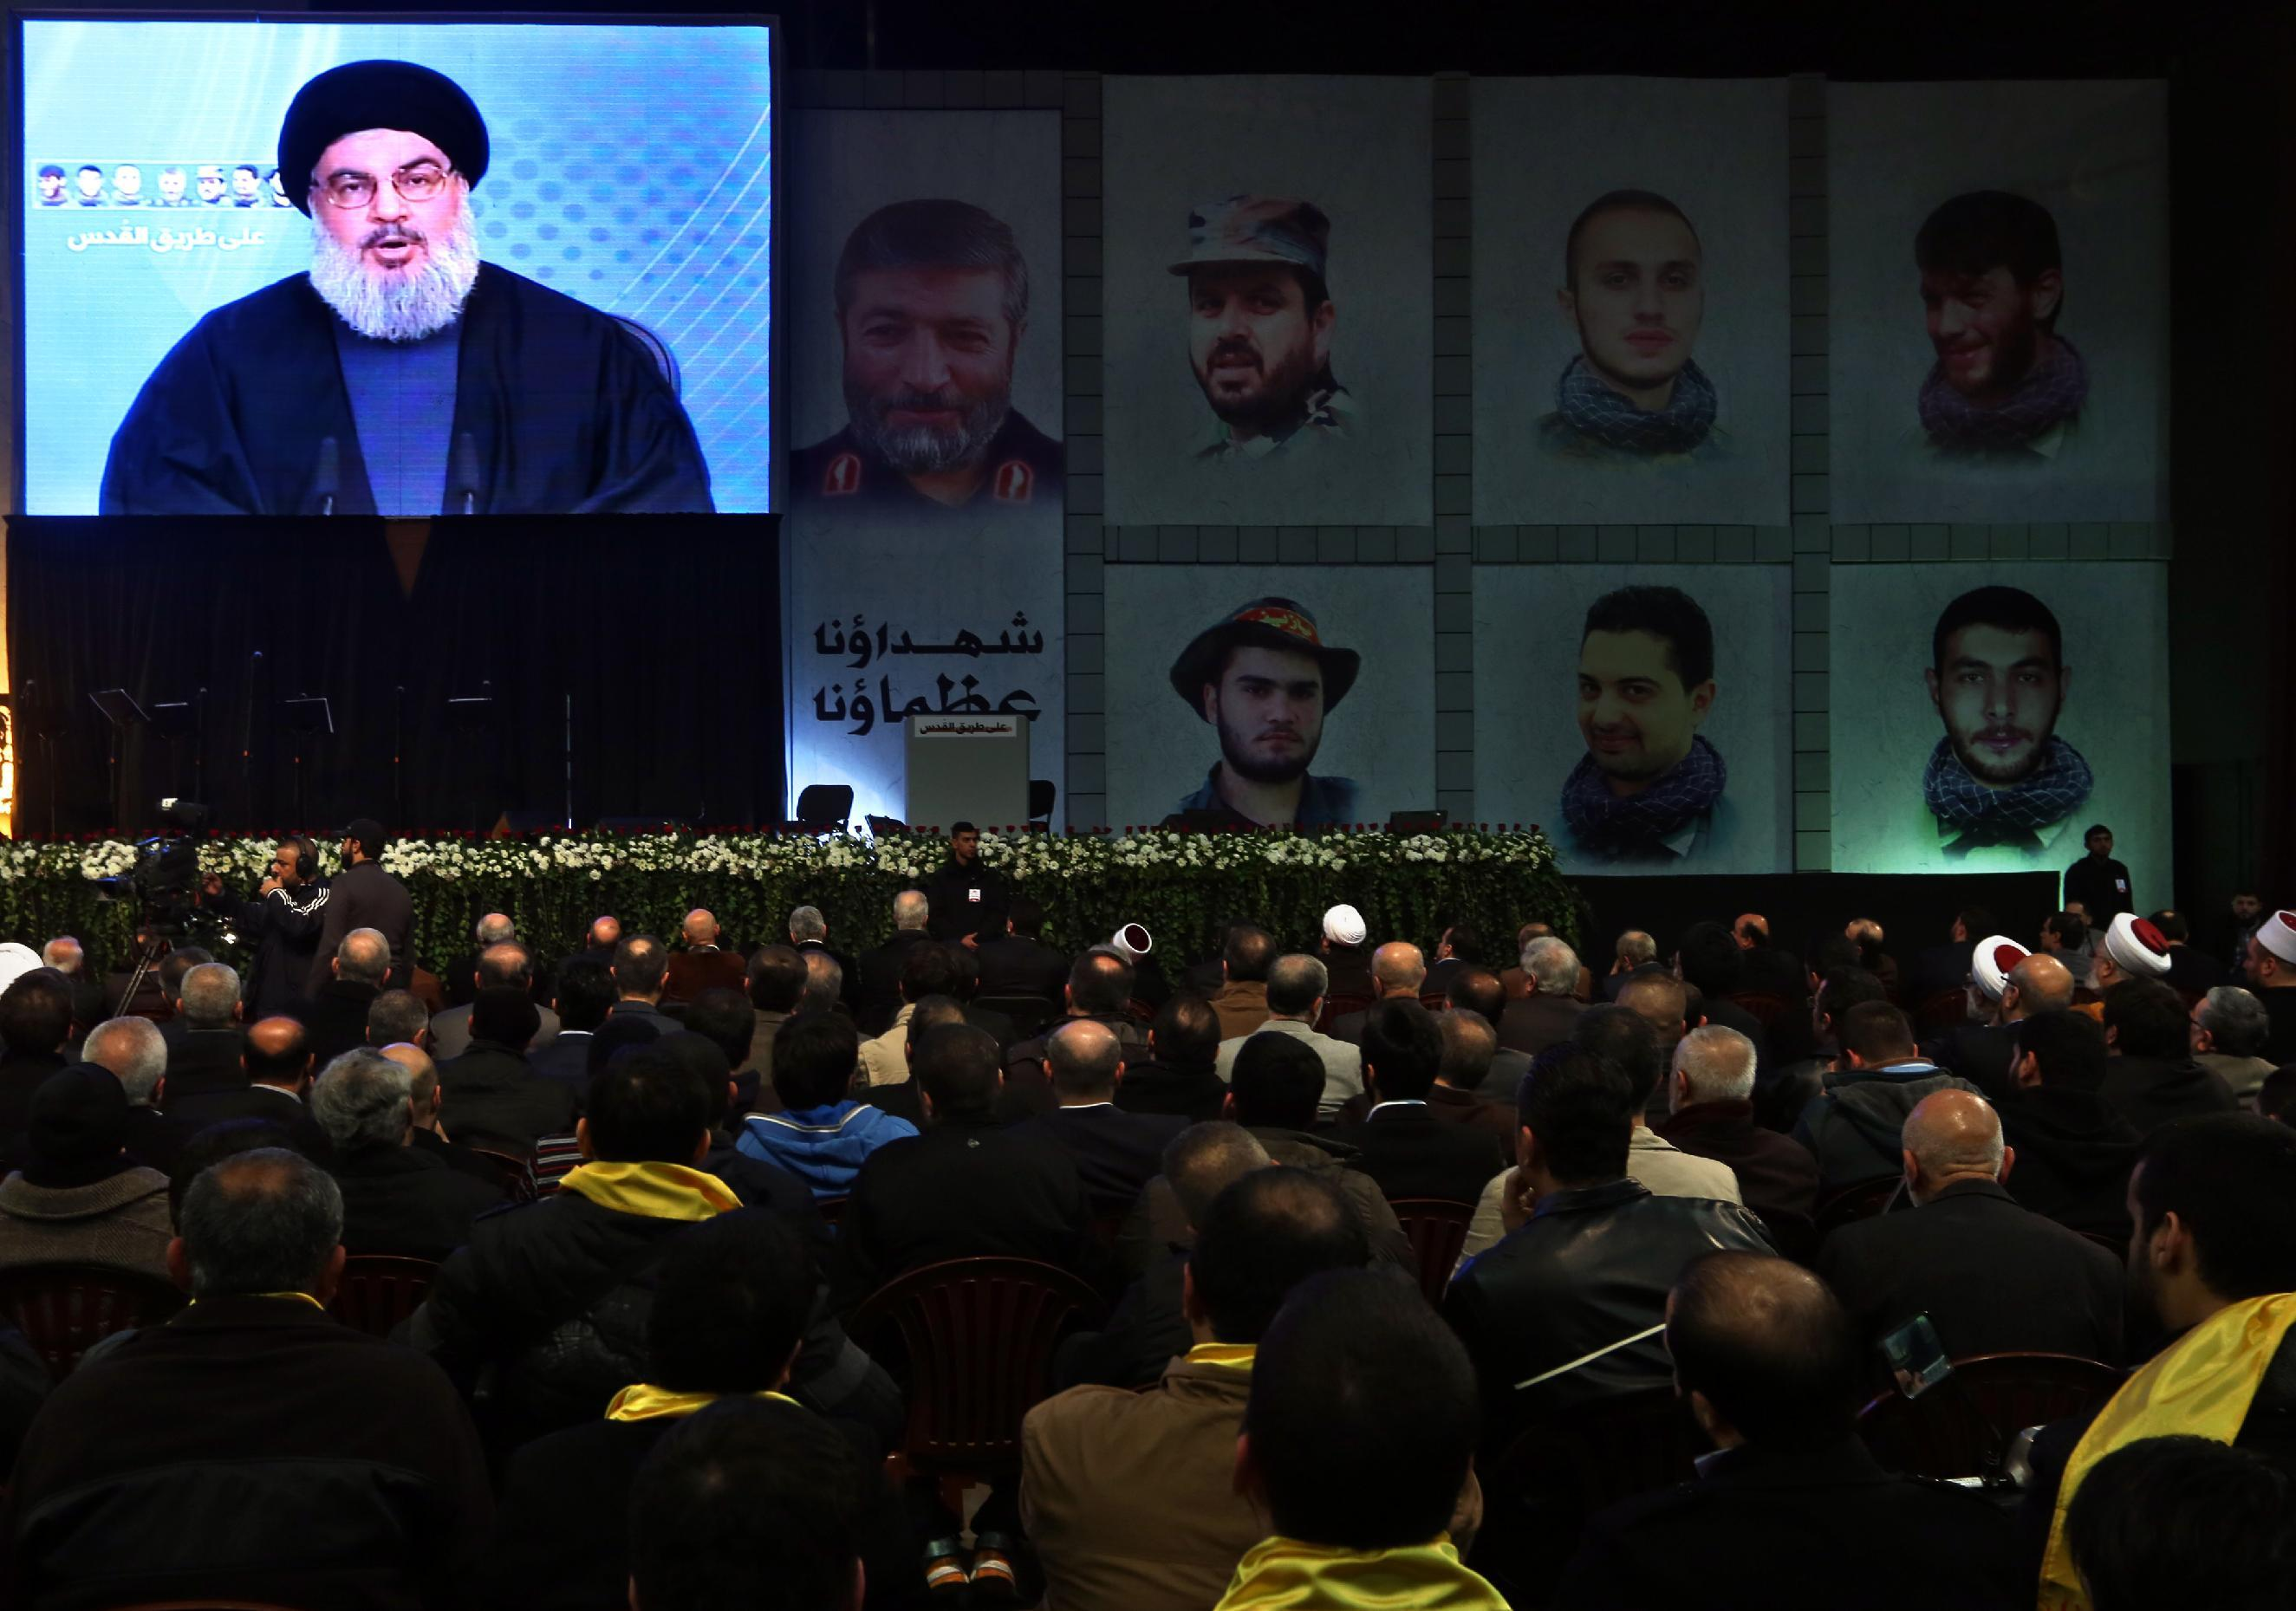 Hezbollah warns Israel it won't tolerate more attacks